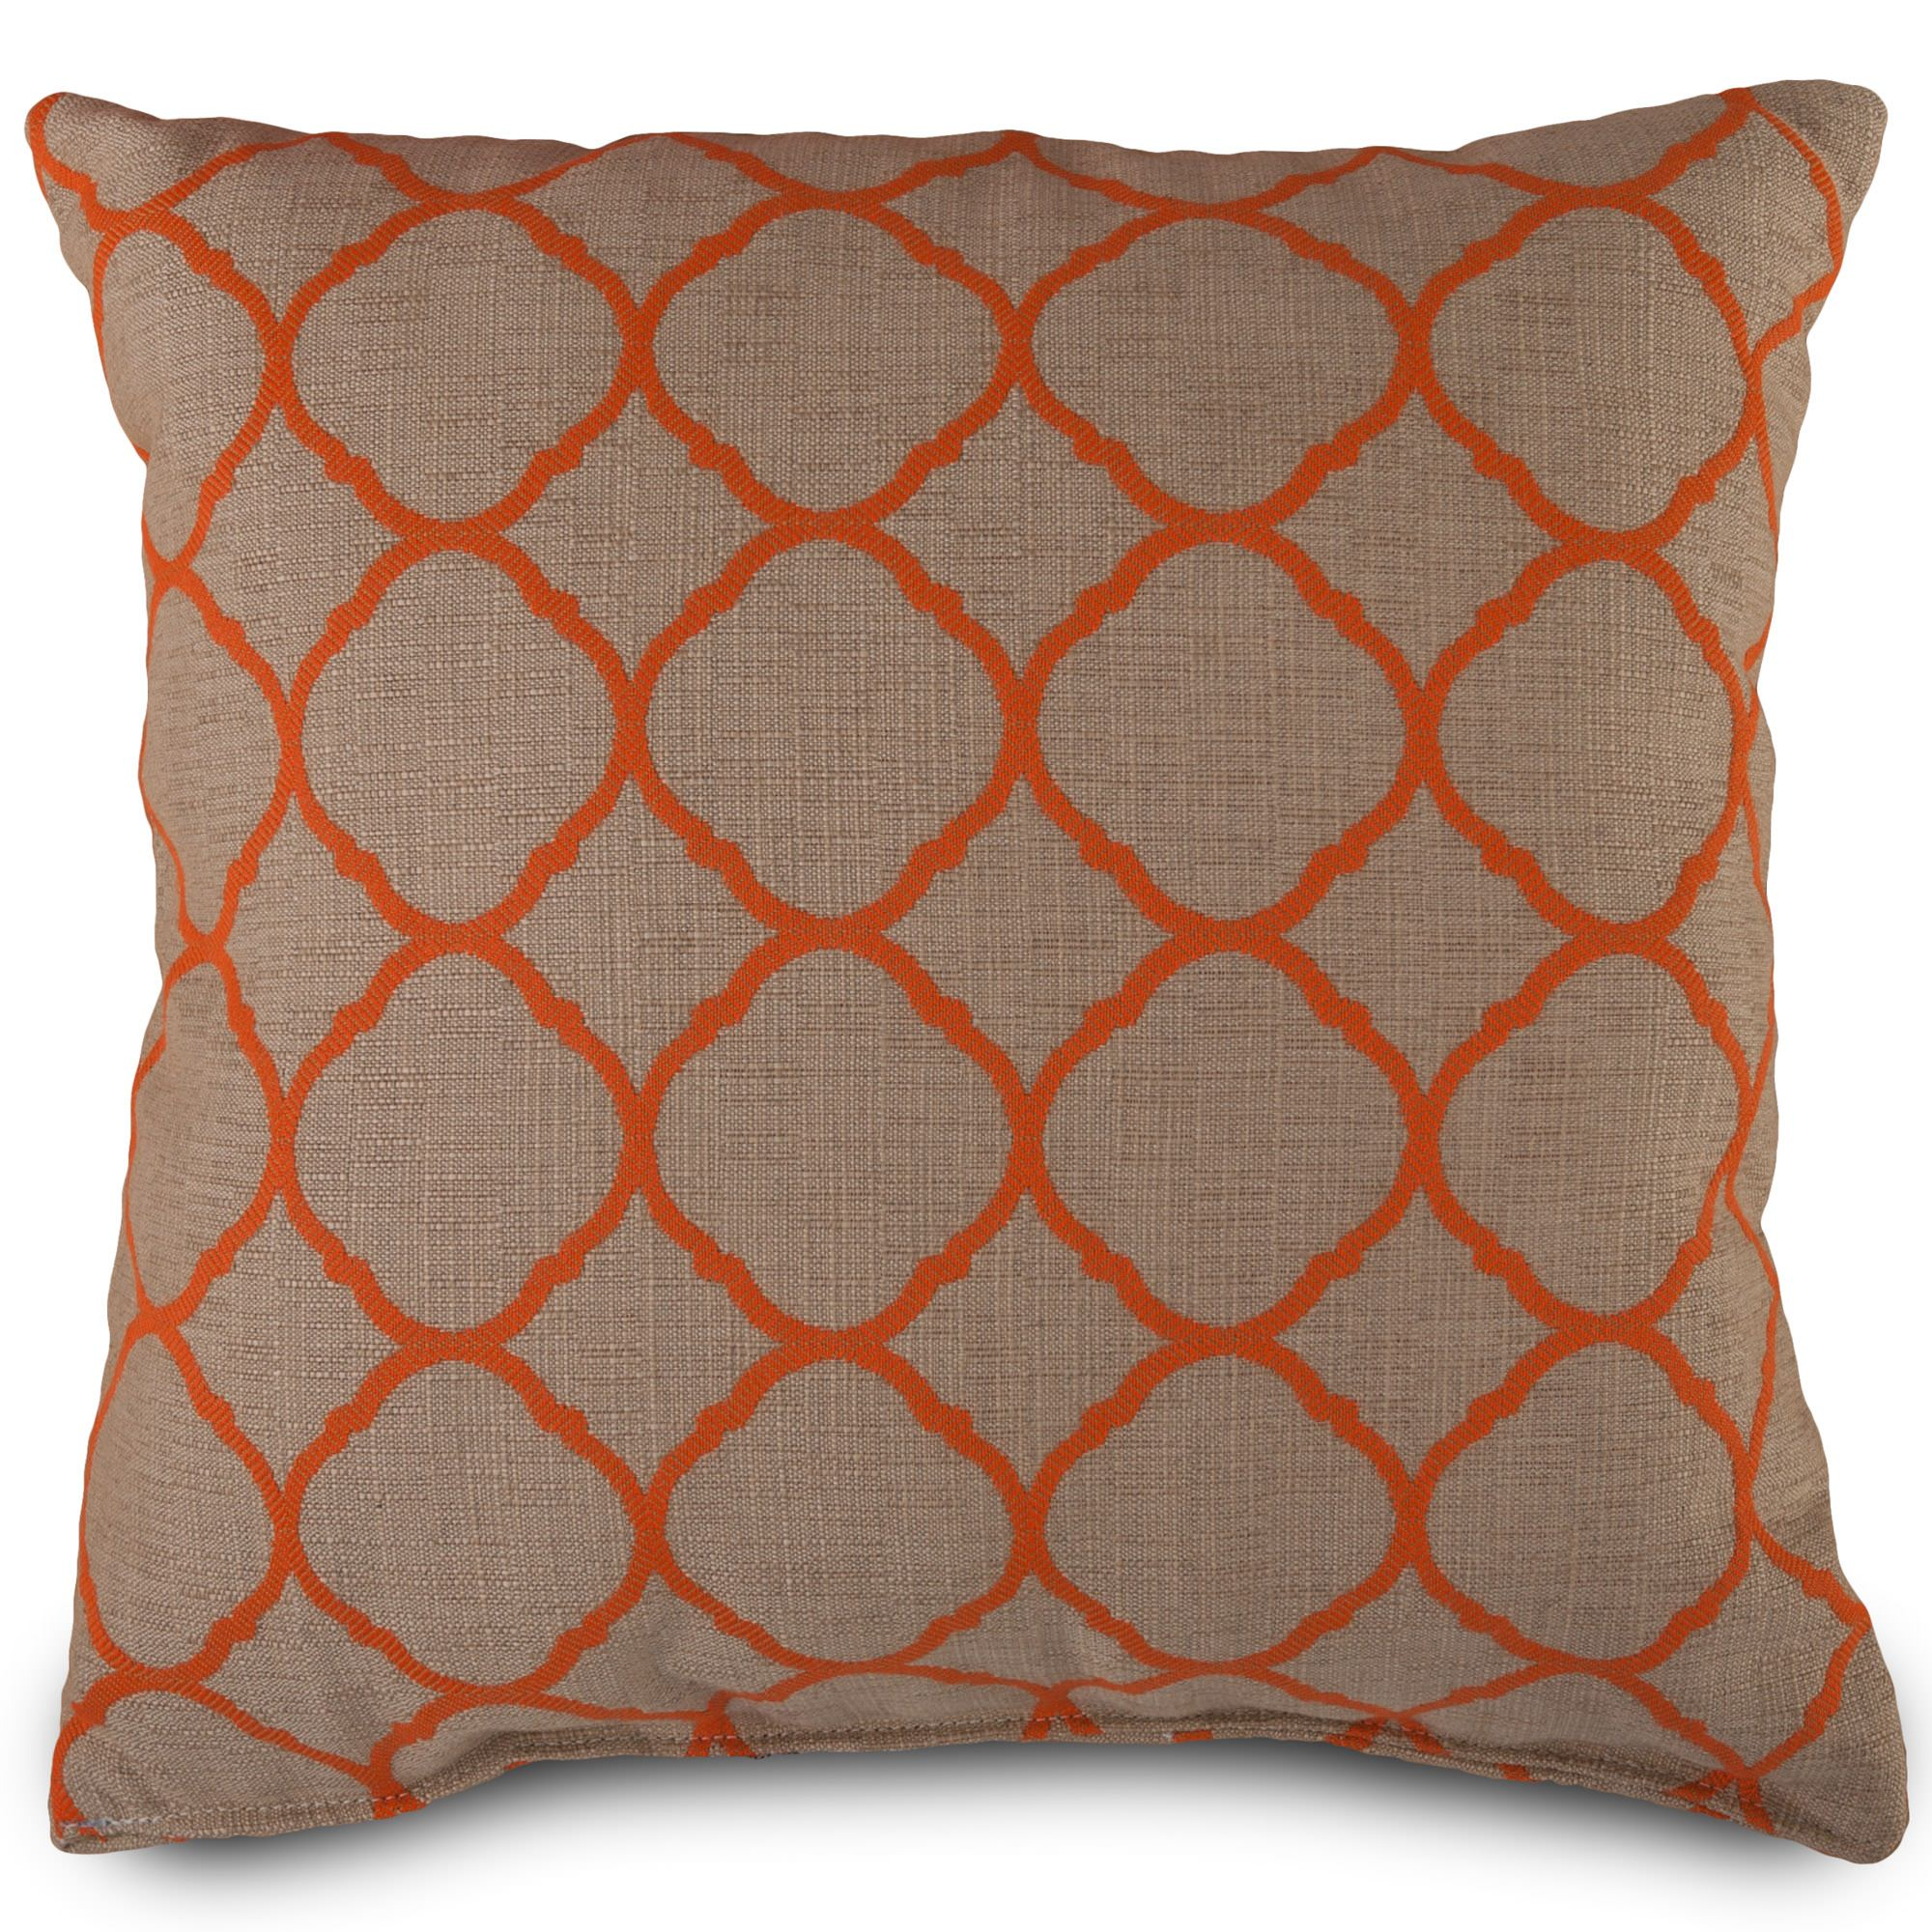 Accord Koi Sunbrella Outdoor Pillow ...